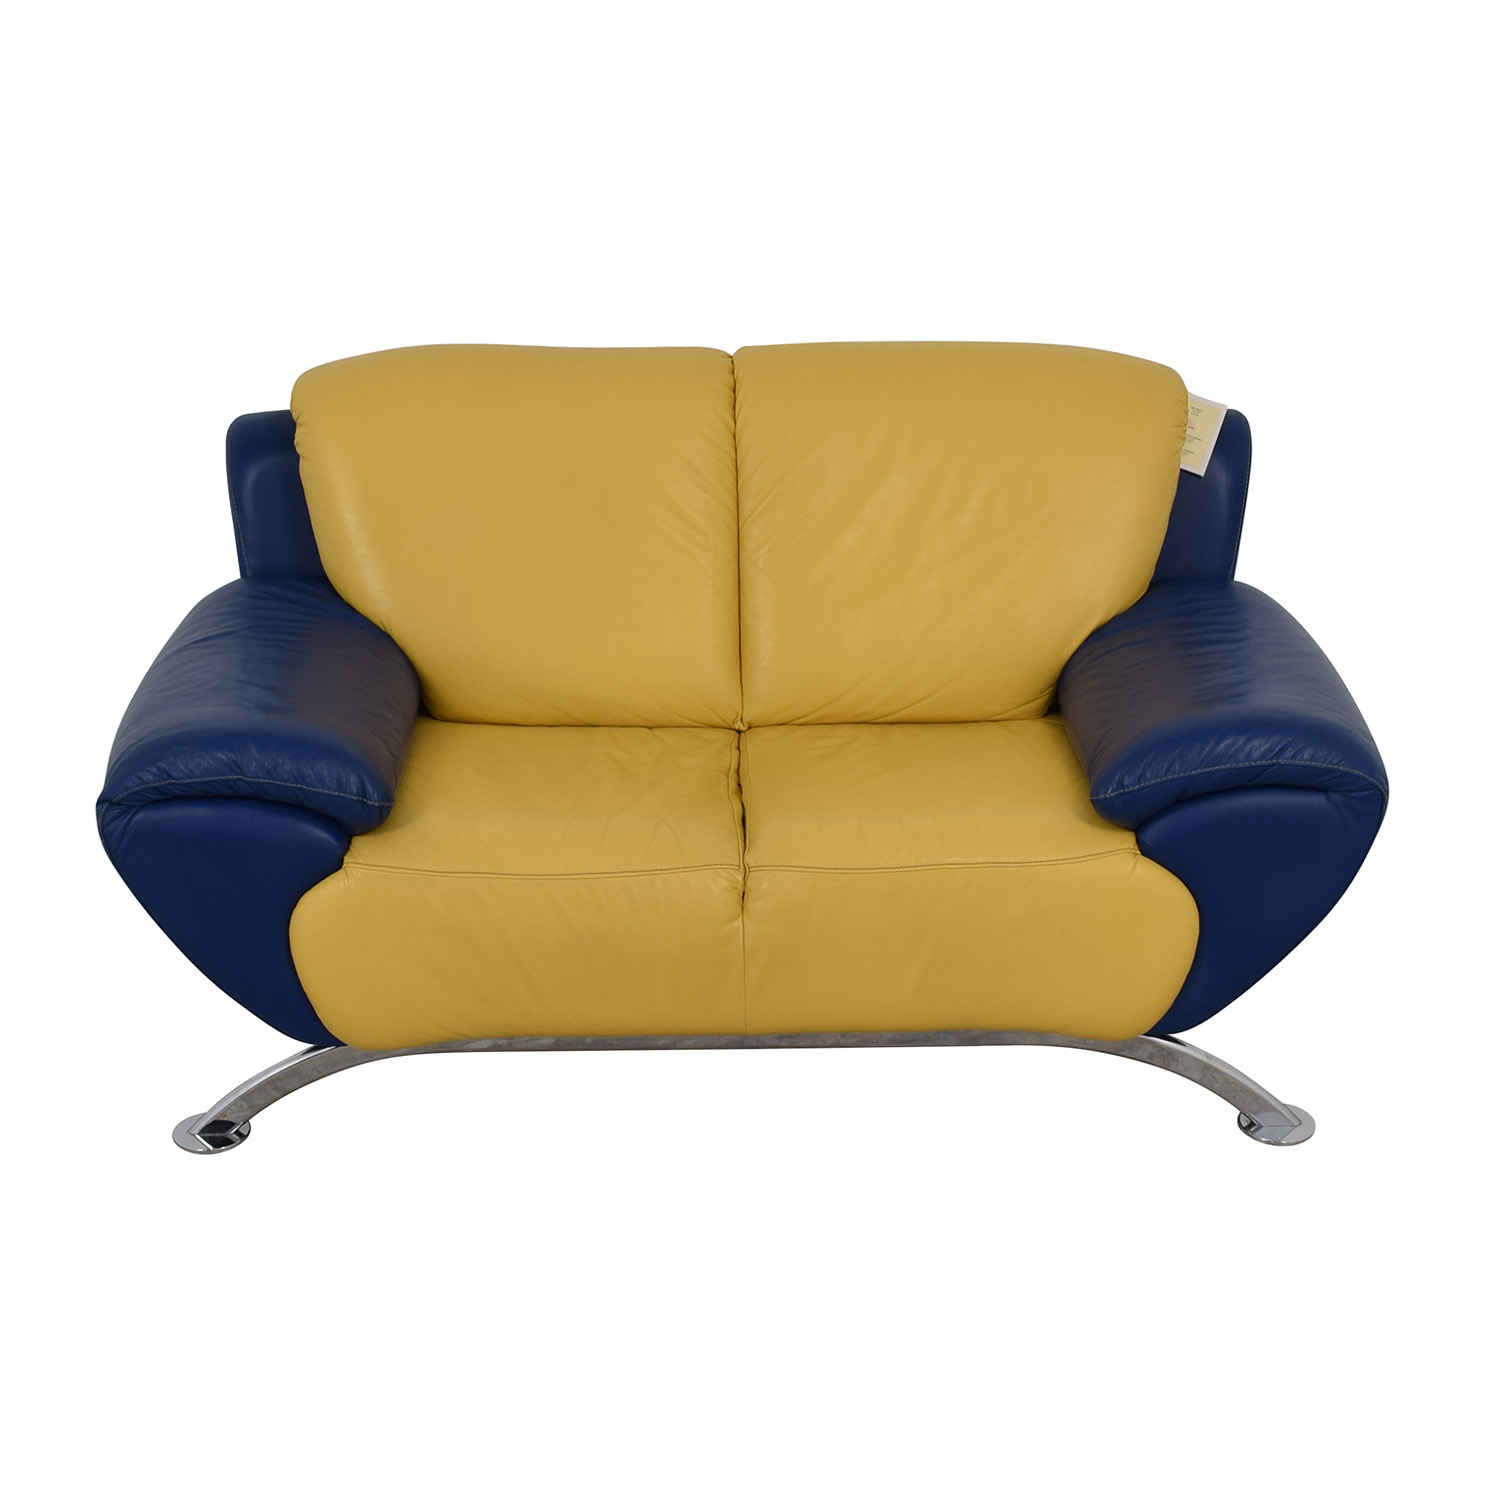 Satis Satis Modern Yellow and Blue Leather Loveseat used